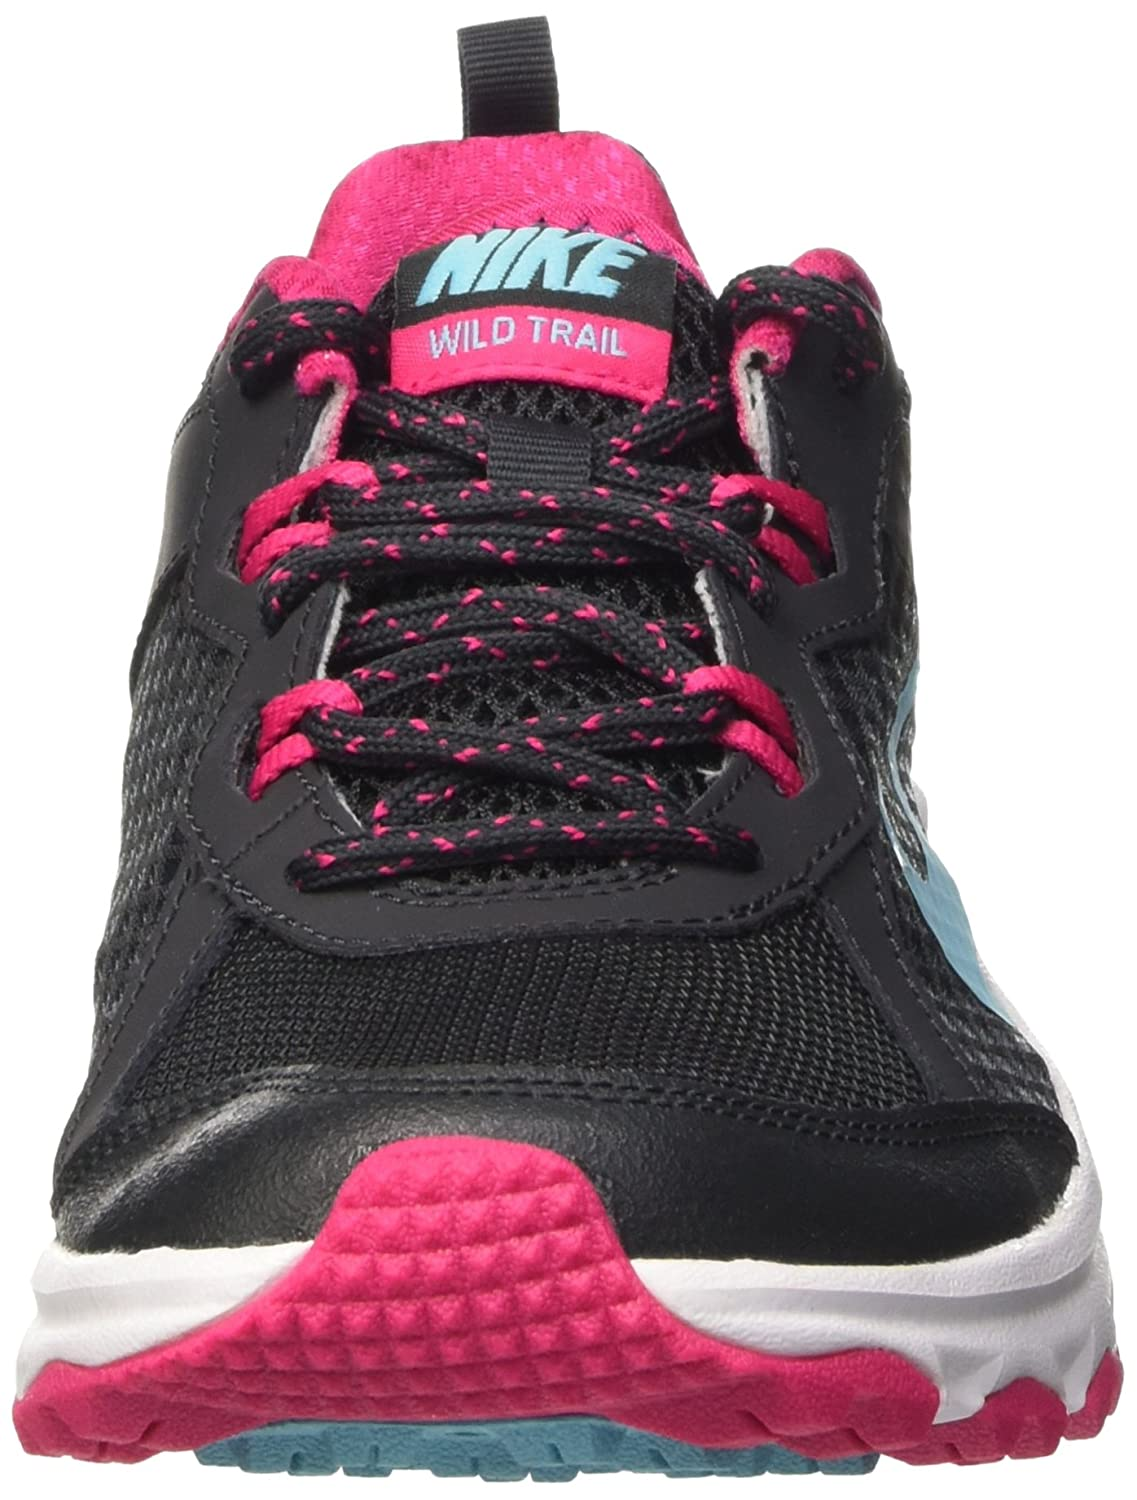 Fall/Winter Nike Wild Trail 643074-001 Anthracite / Polarized Blue-Vivid Pink-White   Nike   Womens   2014